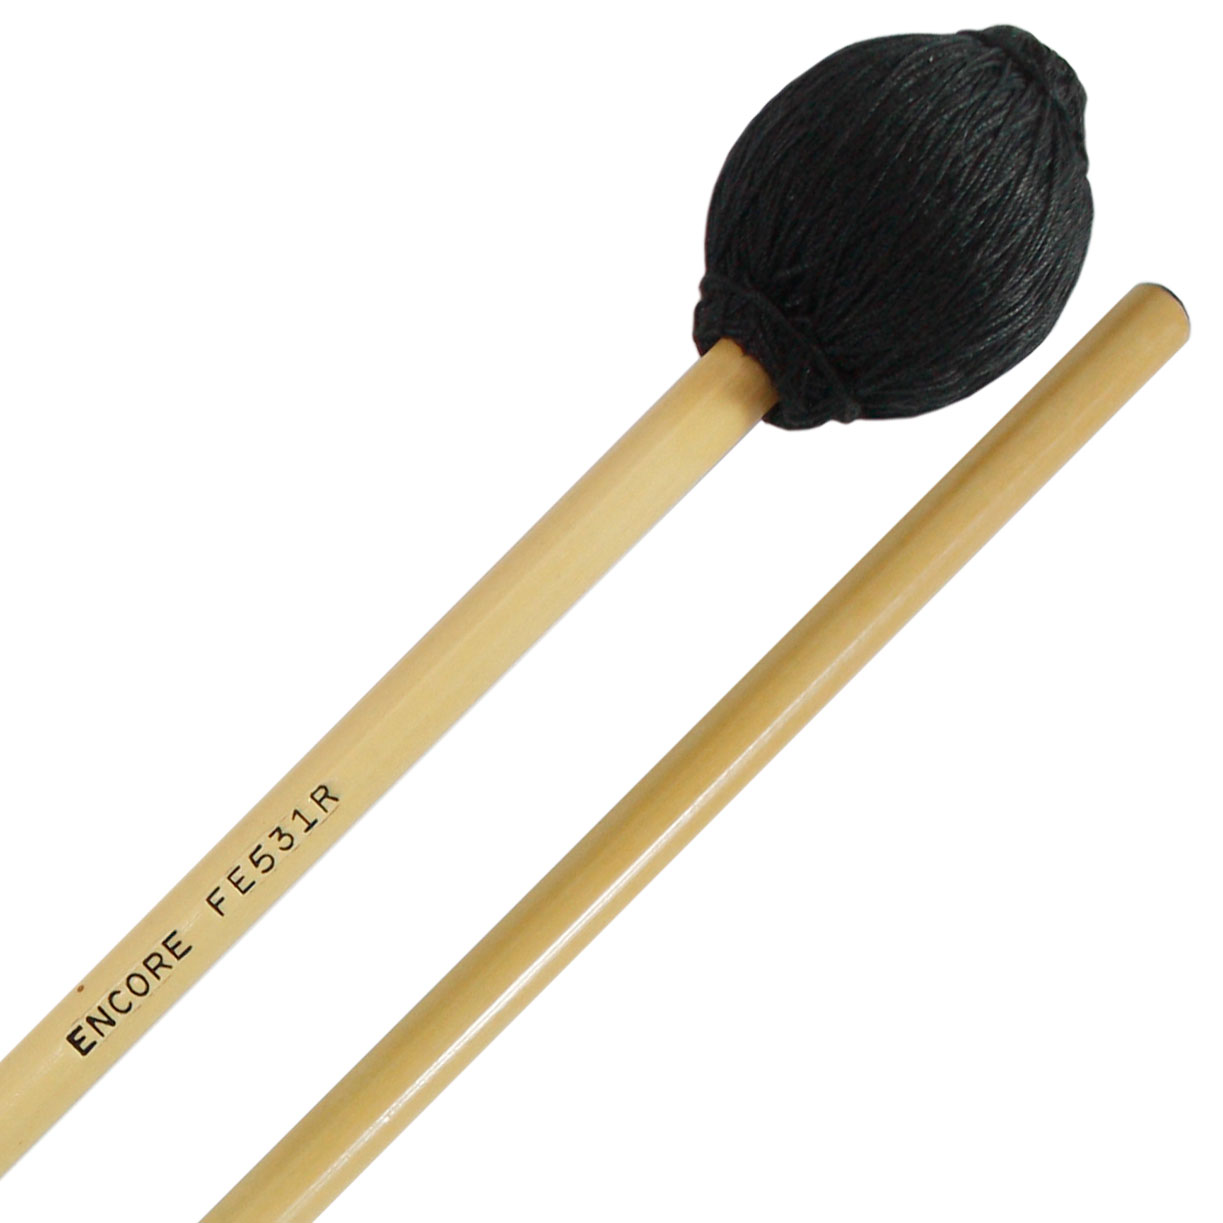 Encore Black Yarn Medium Front Ensemble Keyboard Mallets with Rattan Shafts